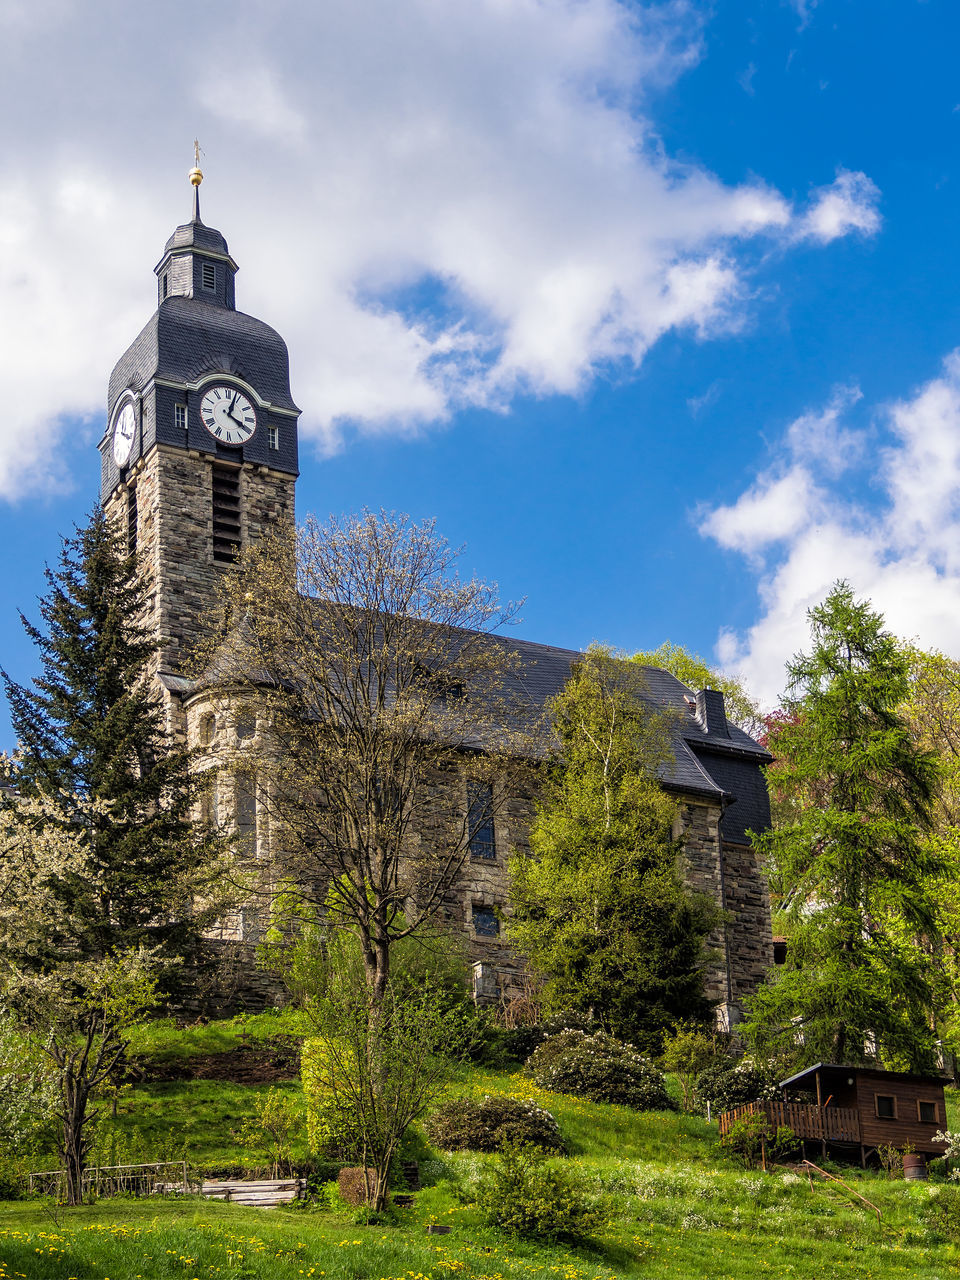 architecture, tree, built structure, building exterior, tower, history, cloud - sky, day, sky, low angle view, clock tower, outdoors, no people, spirituality, religion, place of worship, bell tower, clock, nature, grass